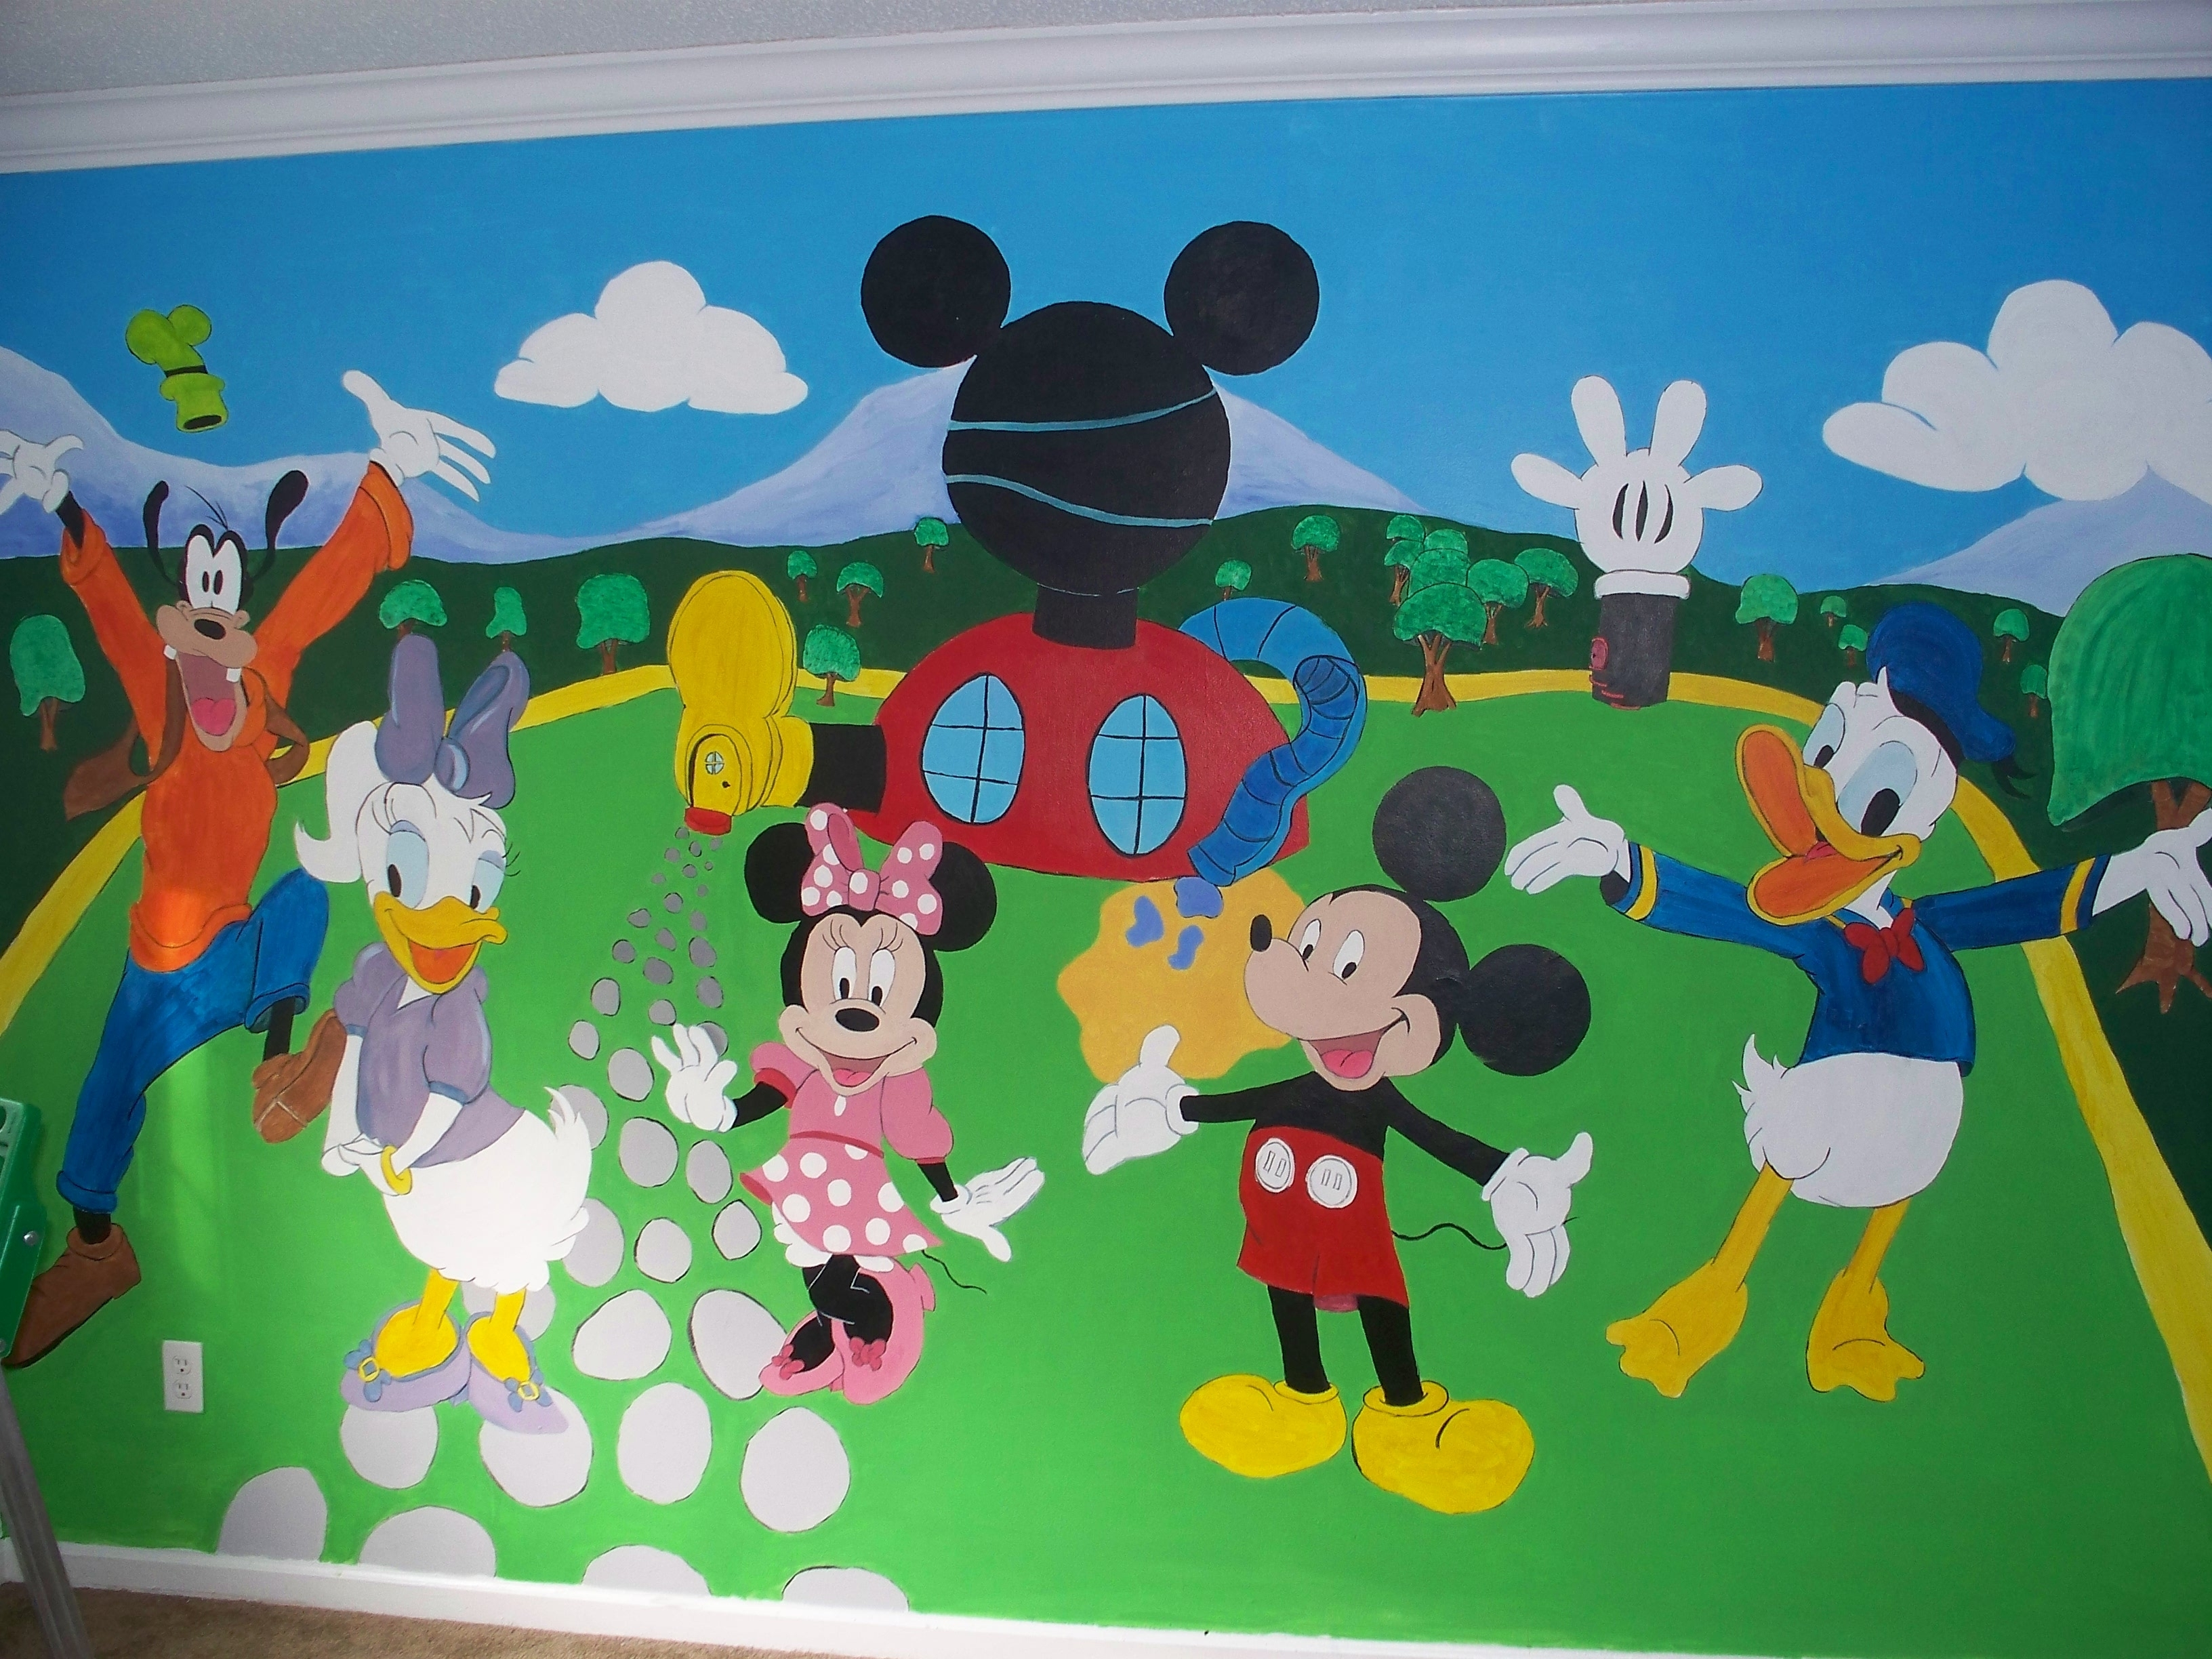 Ideal Mickey Mouse Clubhouse Wall Decals – Wall Art And Wall With Regard To Favorite Mickey Mouse Clubhouse Wall Art (View 8 of 15)